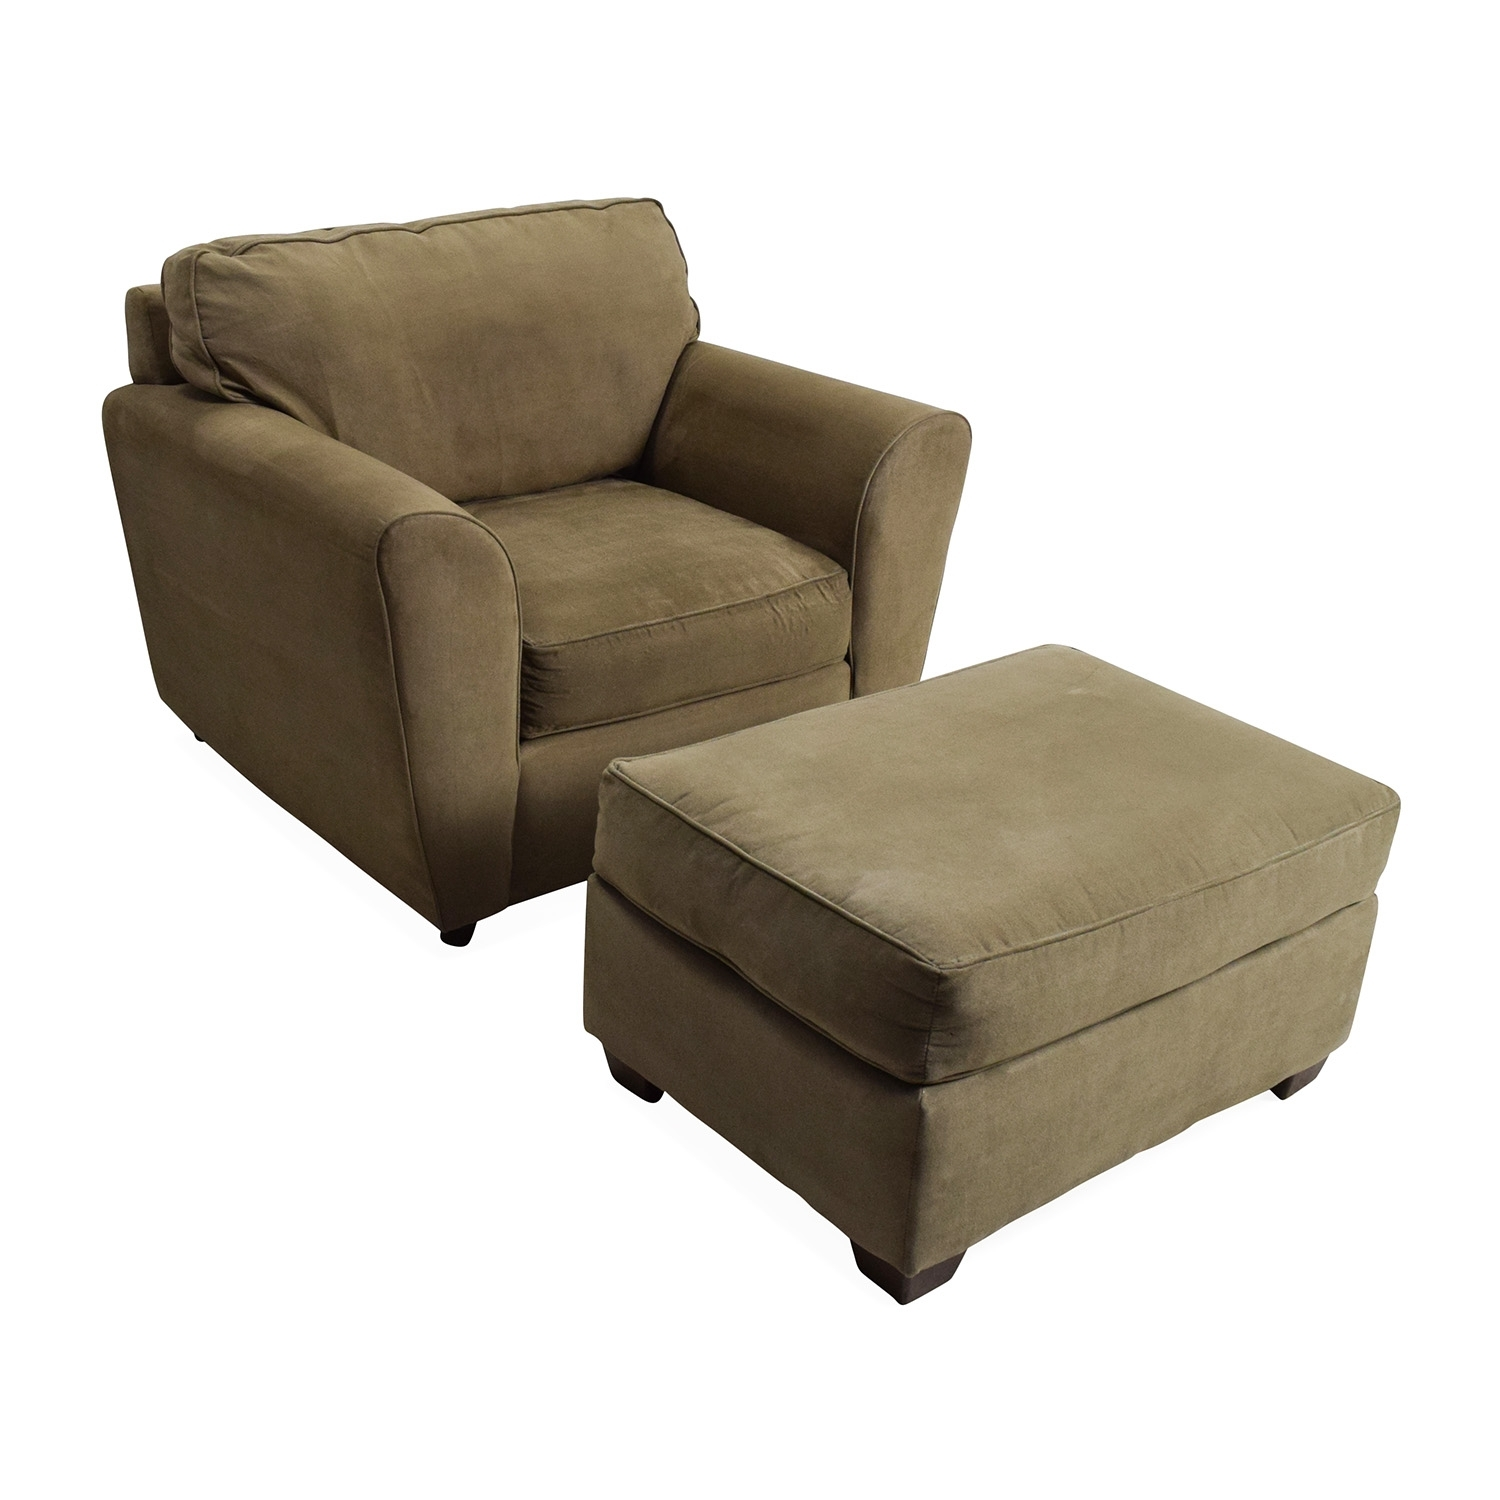 56% Off - Bauhaus Bauhaus Armchair With Ottoman / Chairs inside Chairs With Ottoman (Image 1 of 15)